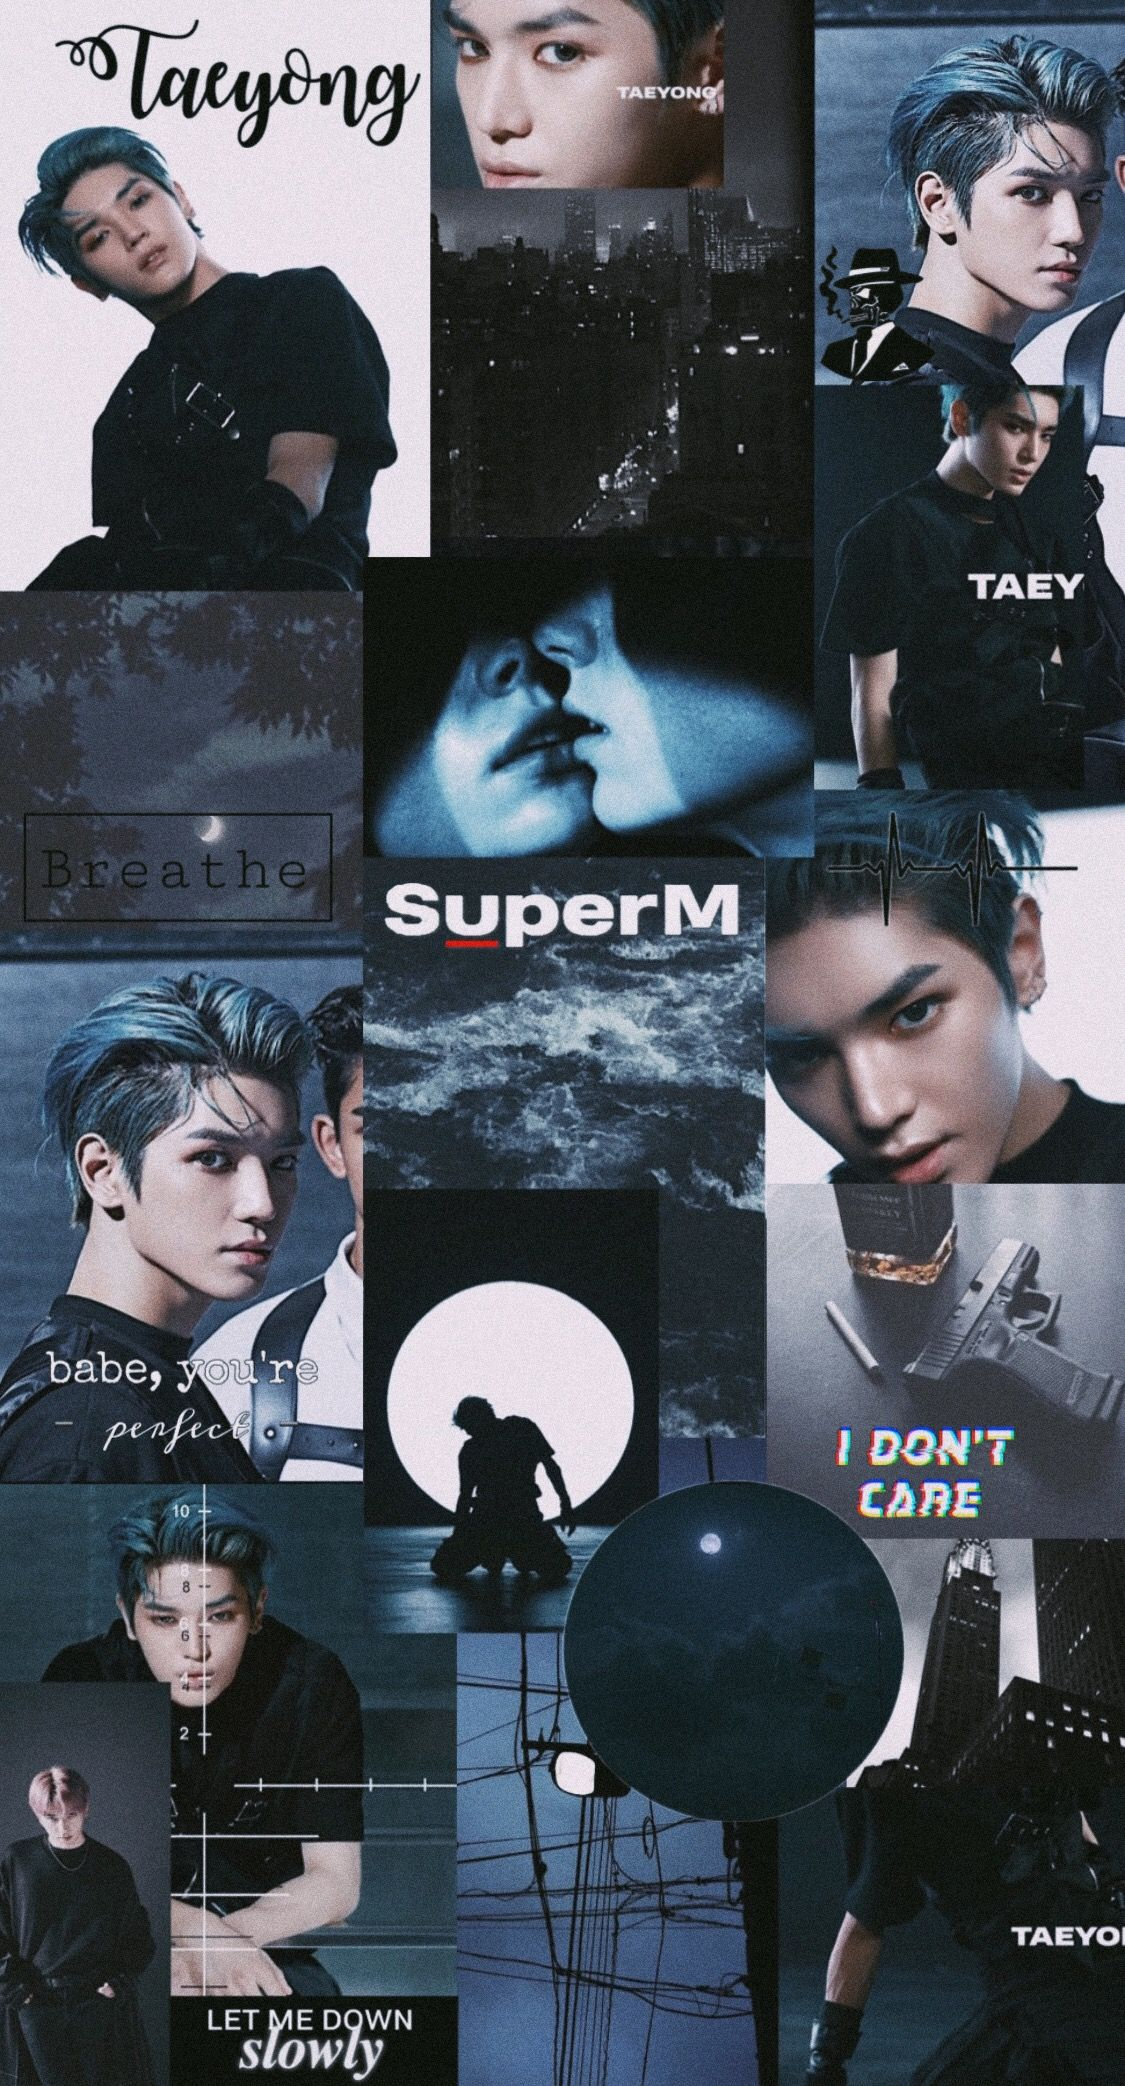 Superm Taeyong Collage Wallpaper Aesthetic